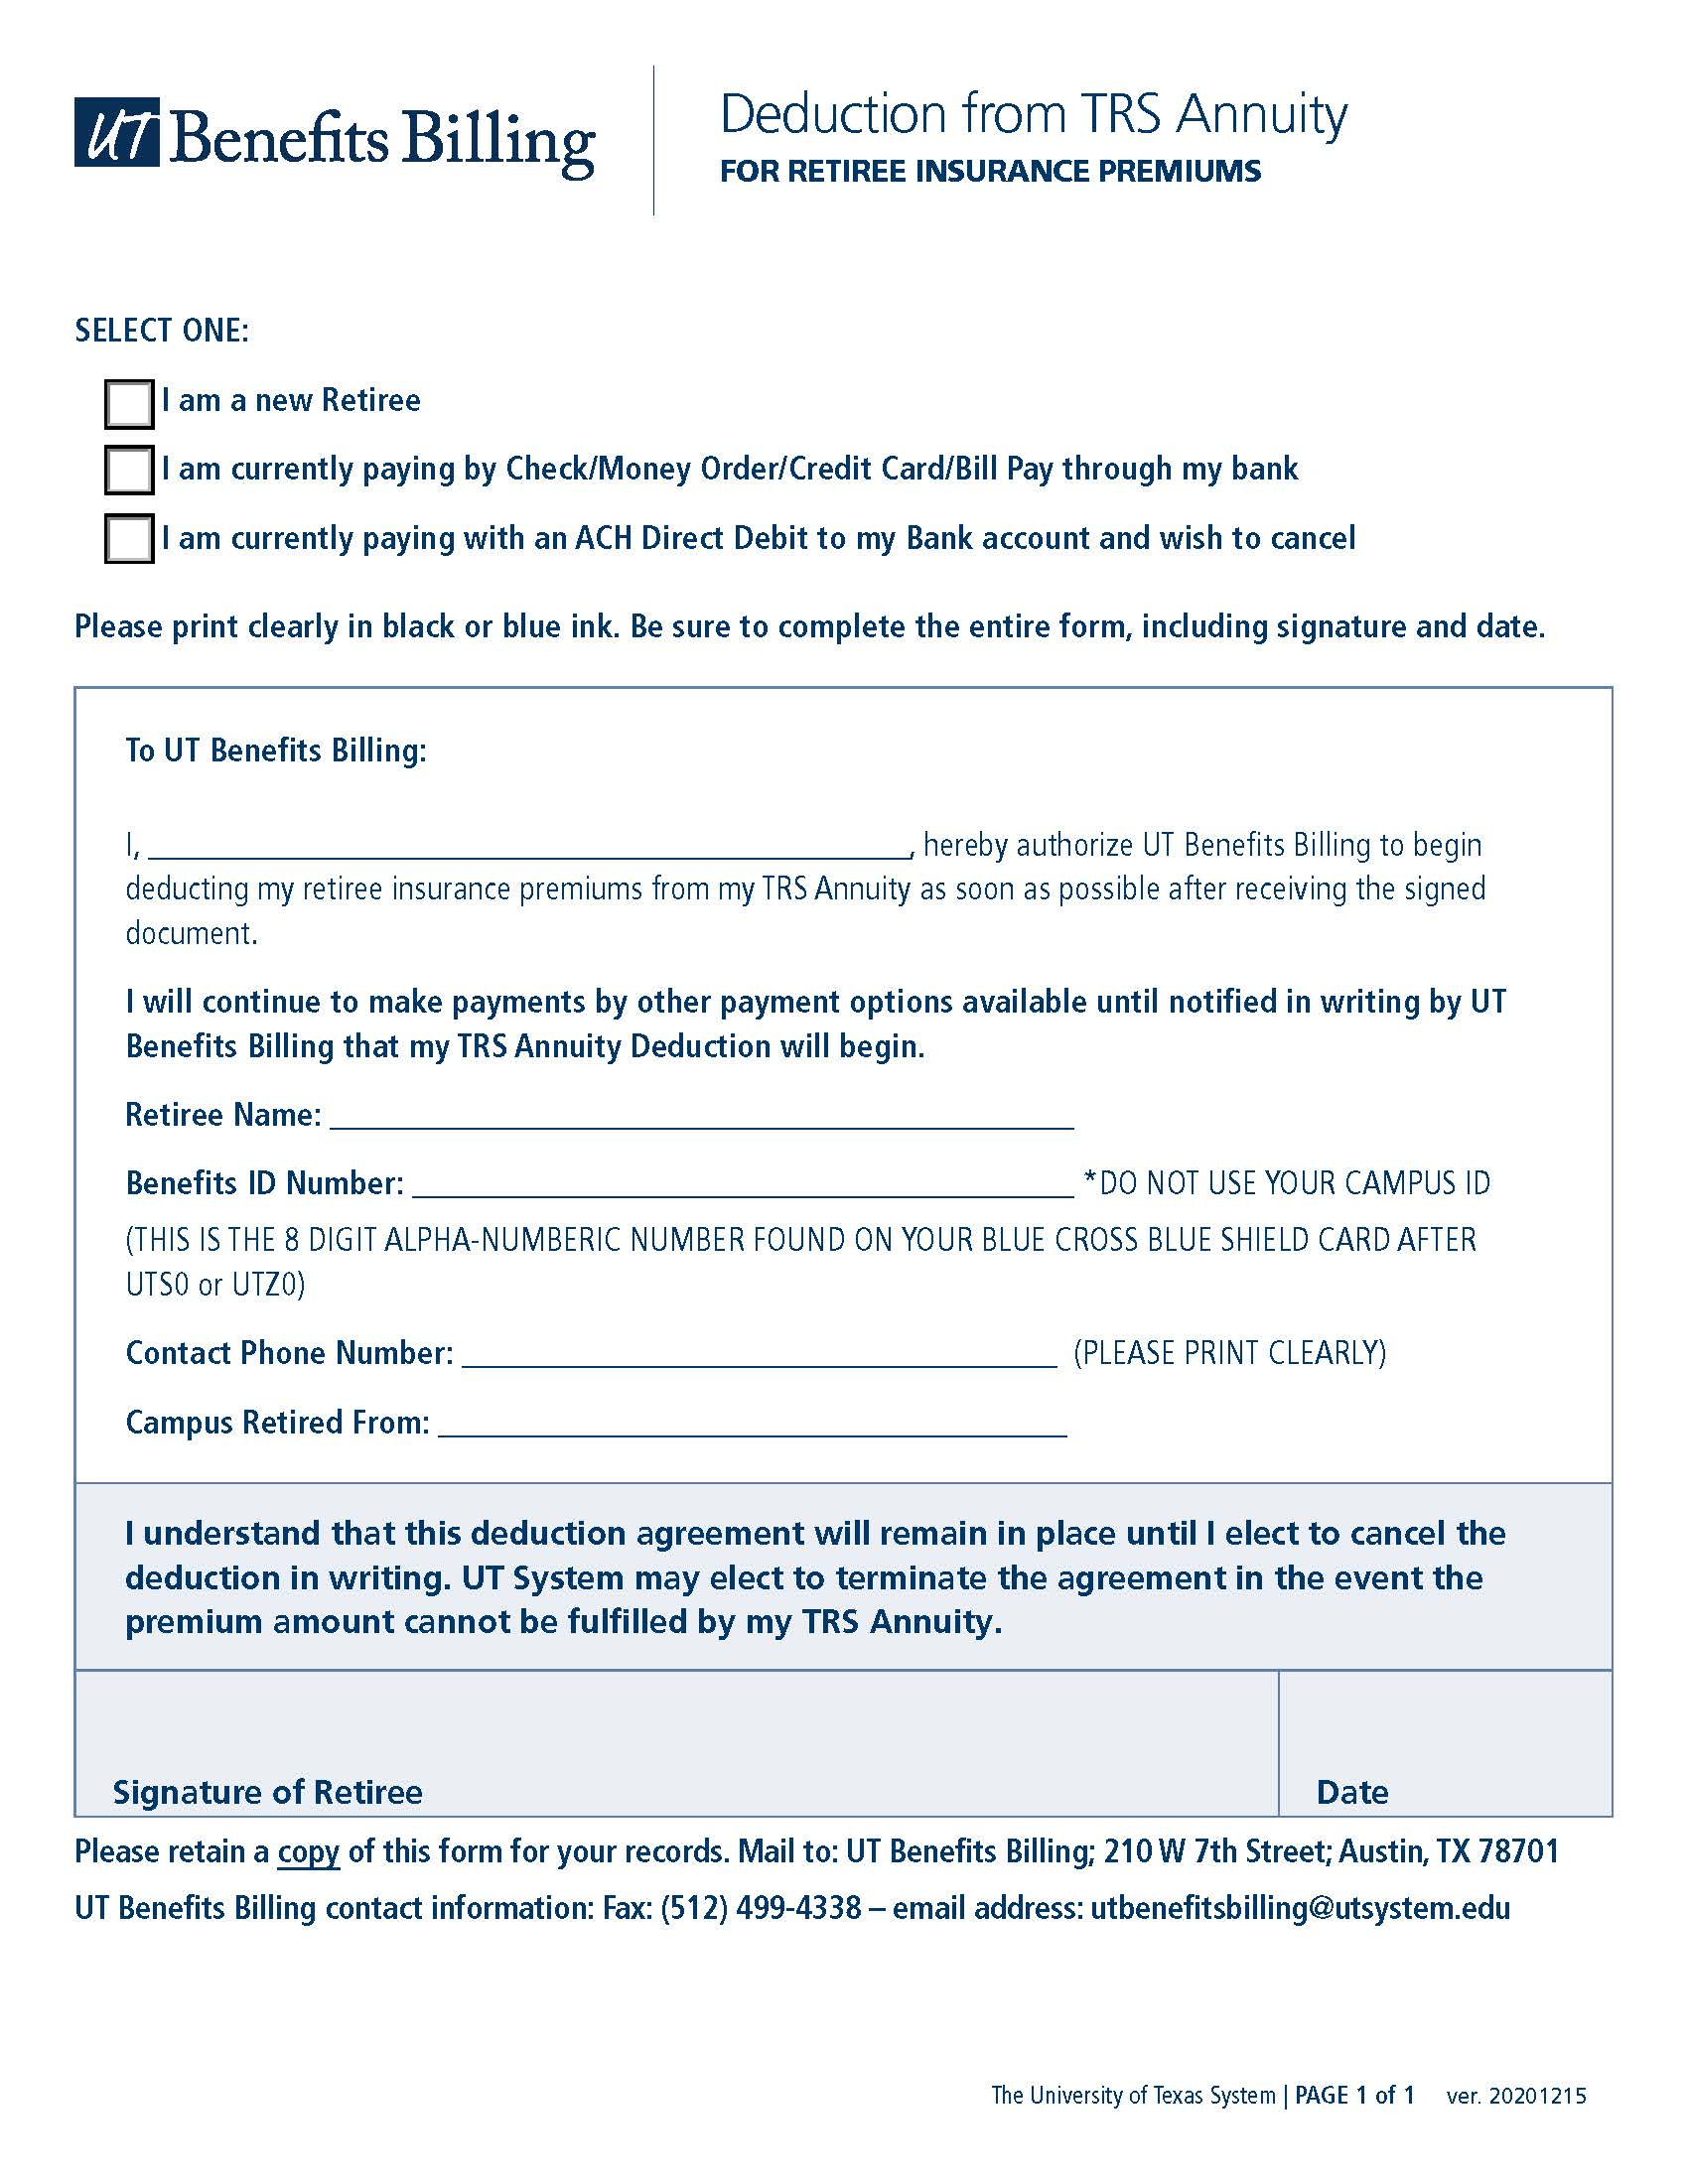 TRS Annuity Deduction Form   University of Texas System